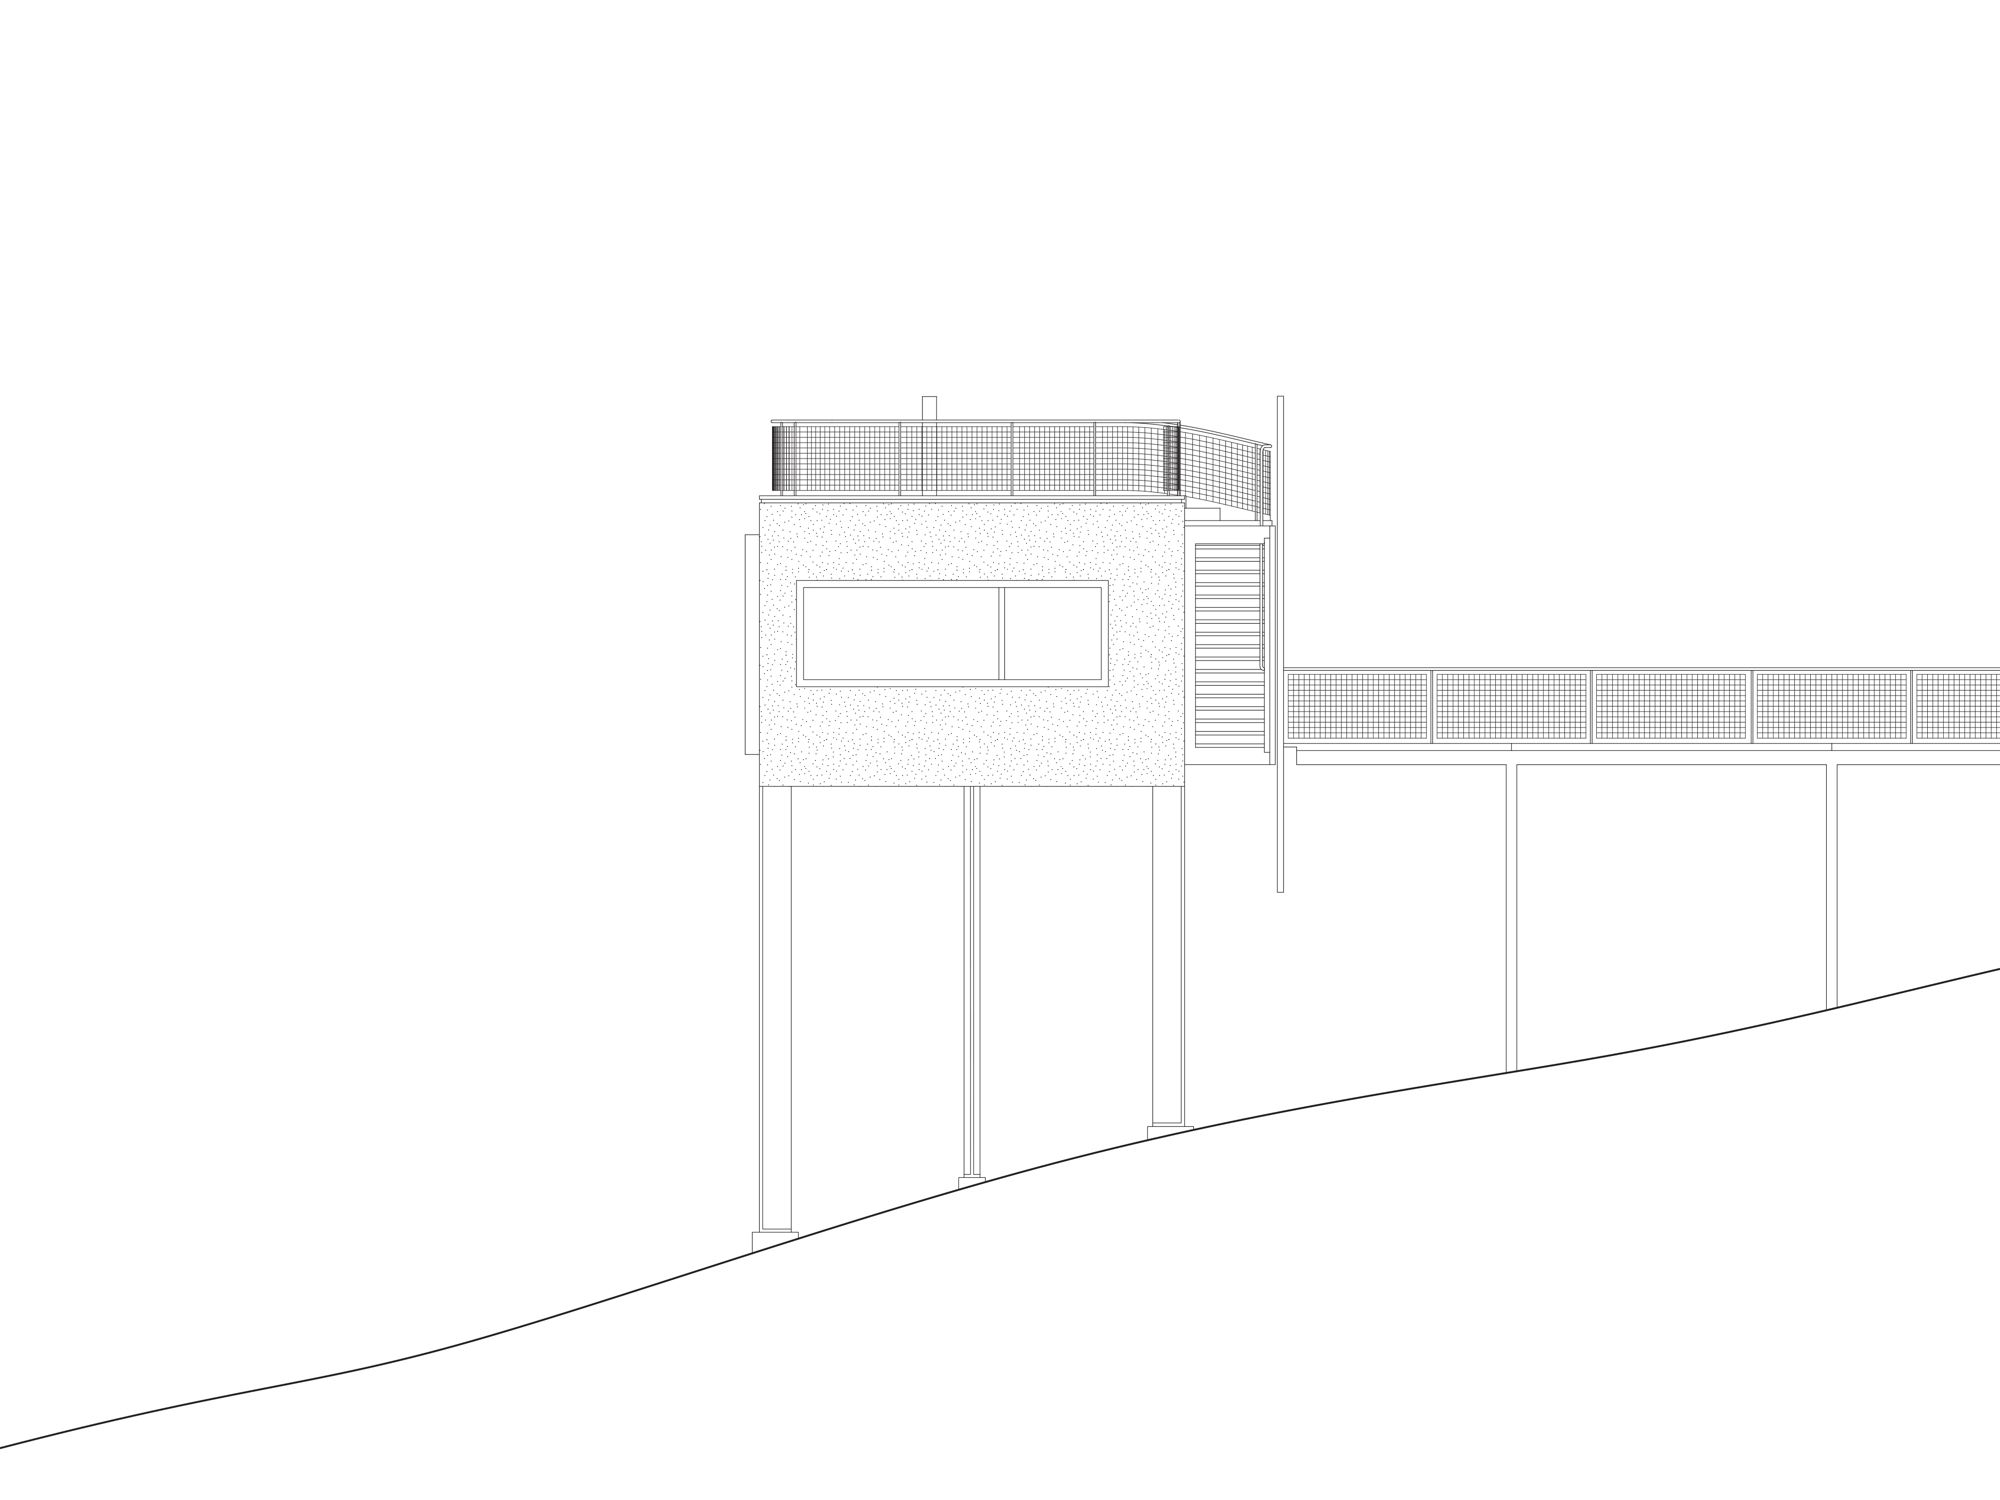 Mask House - Ithaca (New York) - WOJR: Organization for Architecture